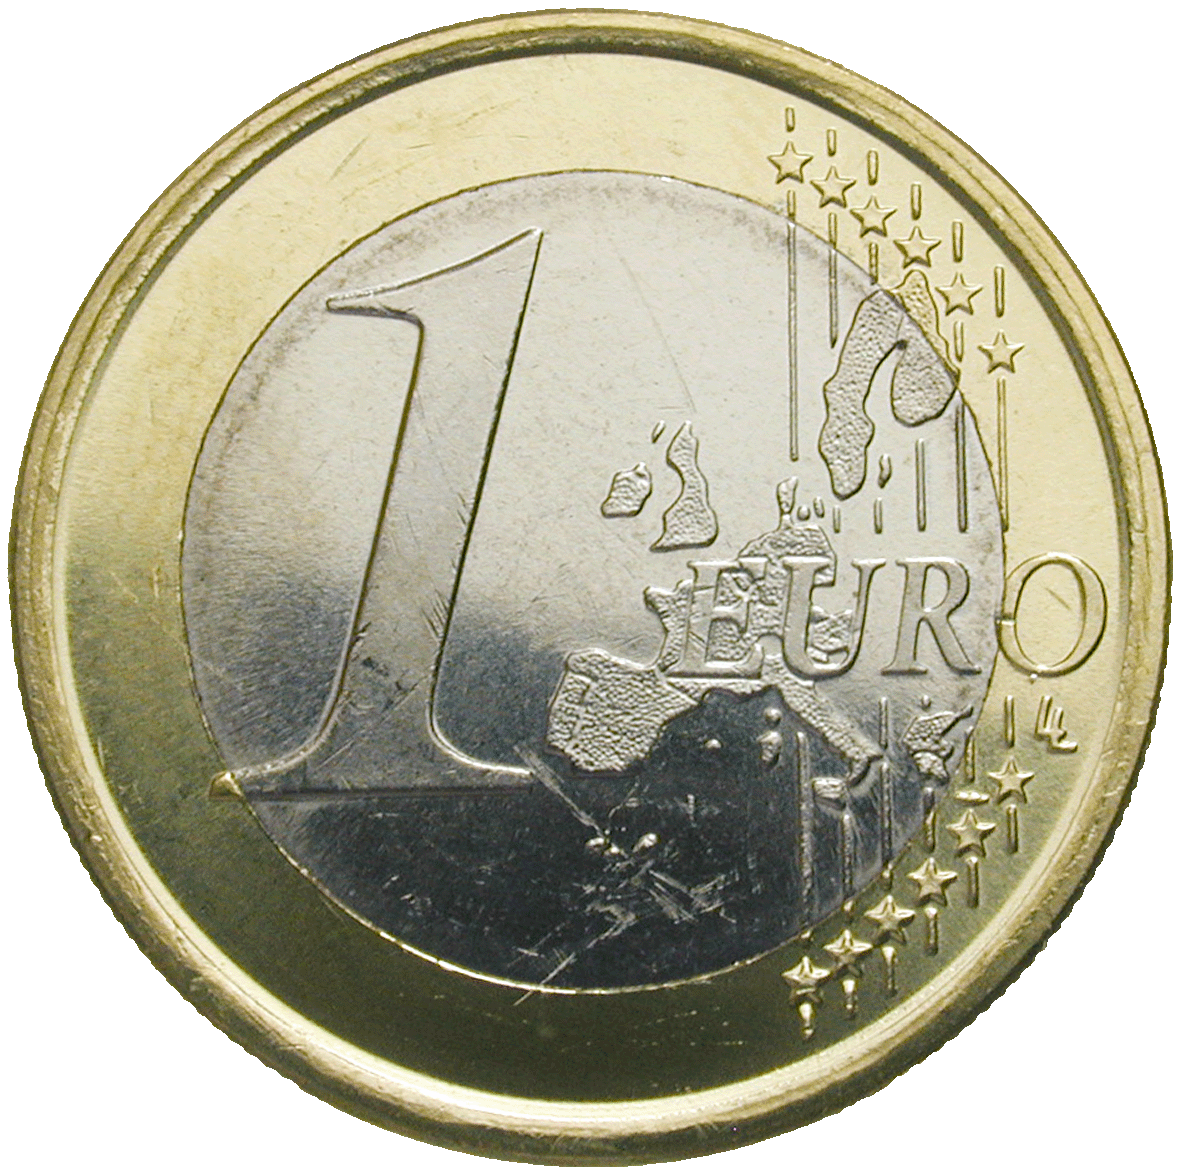 Kingdom of Spain, Juan Carlos, 1 Euro 2003 (reverse)